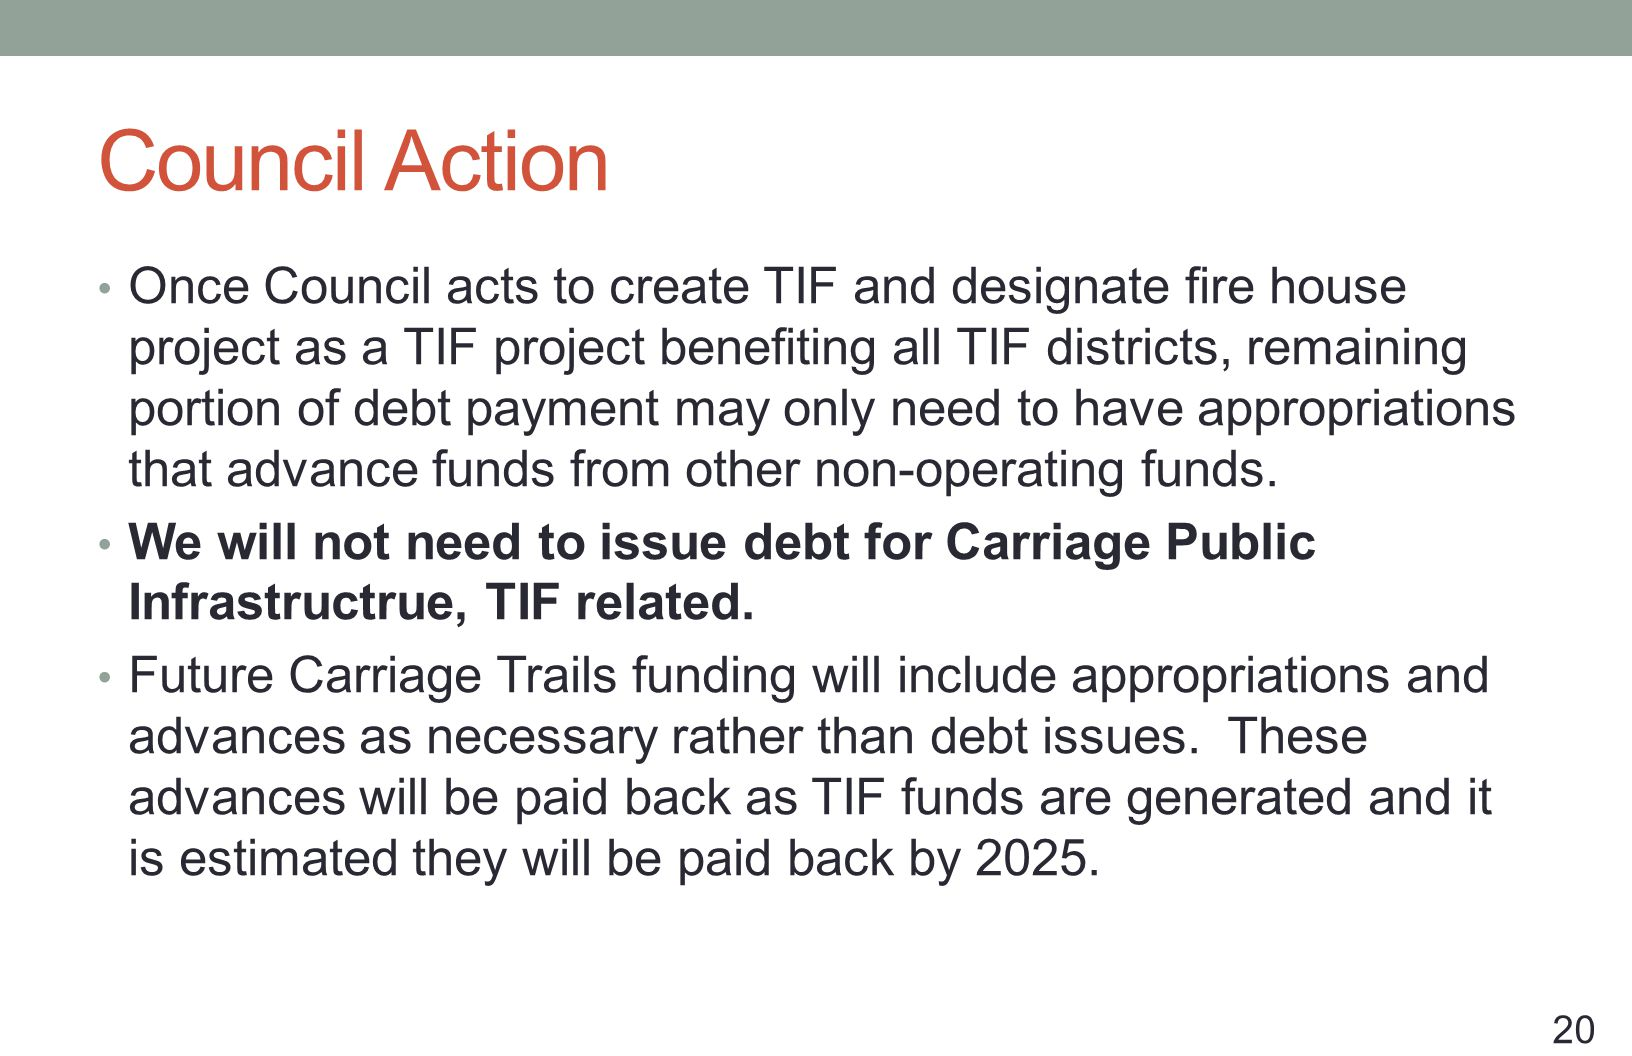 Council Action Once Council acts to create TIF and designate fire house project as a TIF project benefiting all TIF districts, remaining portion of debt payment may only need to have appropriations that advance funds from other non-operating funds.